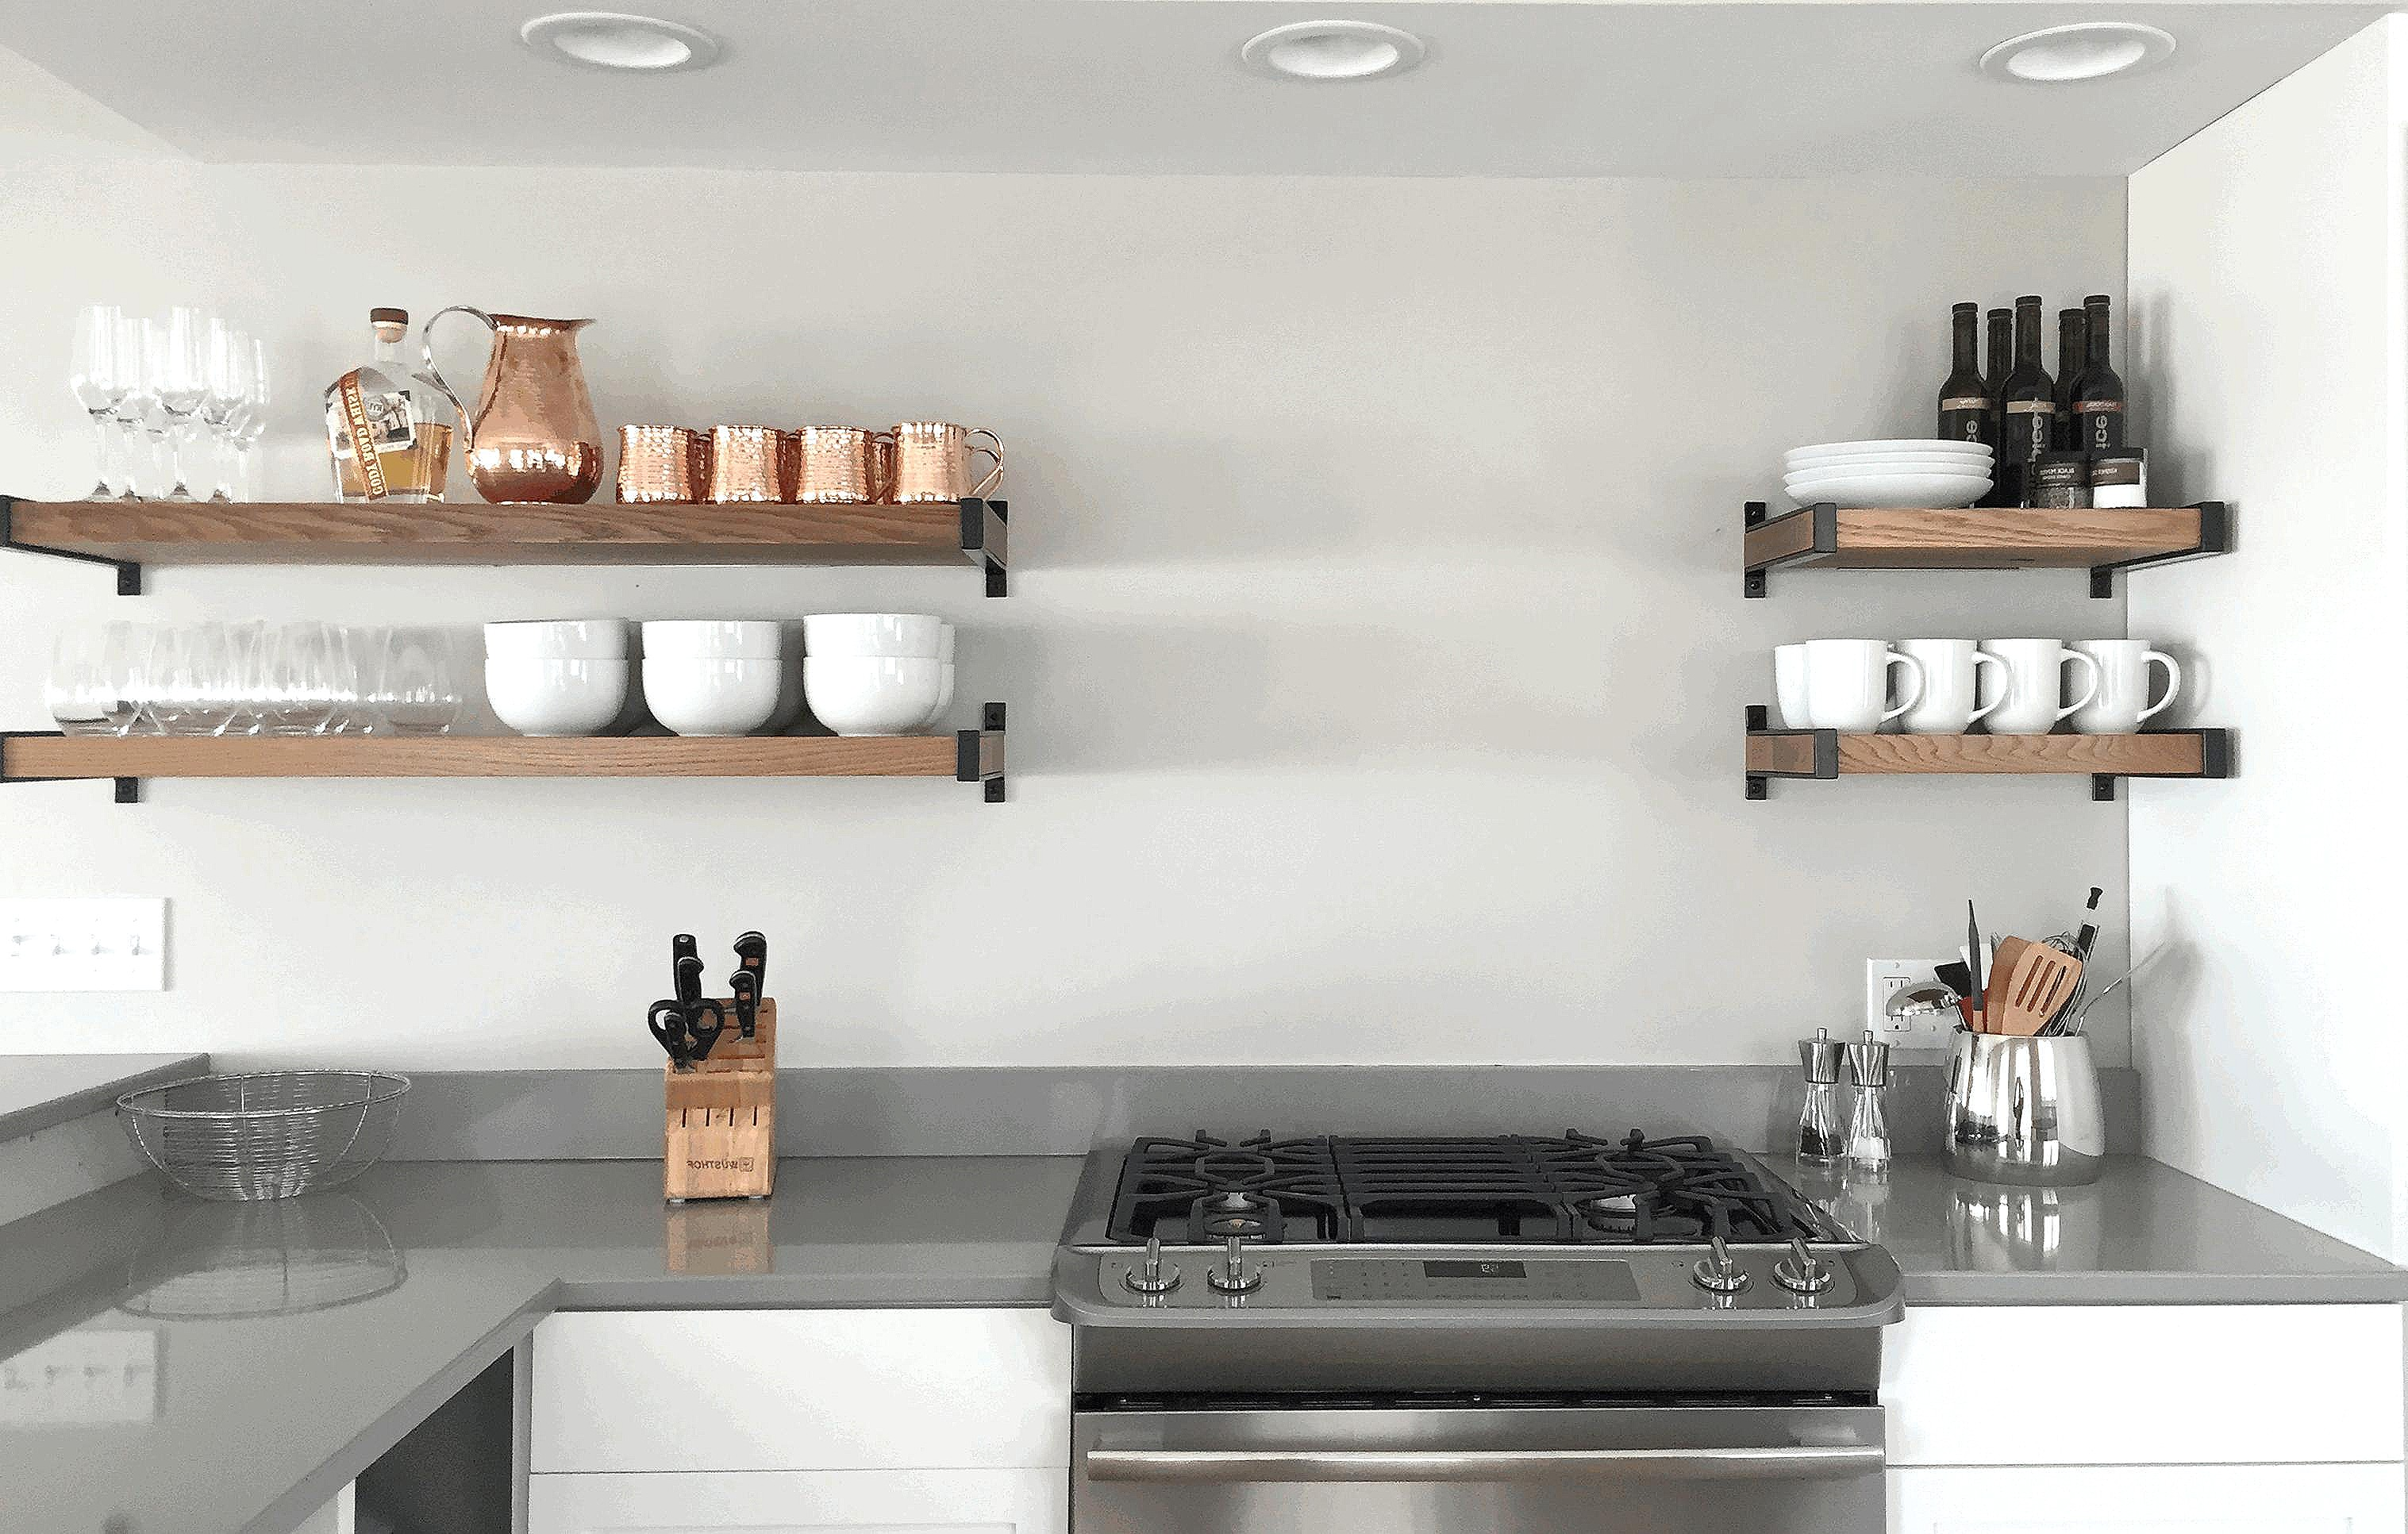 kitchen stunning floating shelves for decor wall heavy duty shelf supports target ikea how hang she easy diy shoe rack hidden storage ideas large mantel mounting without brackets